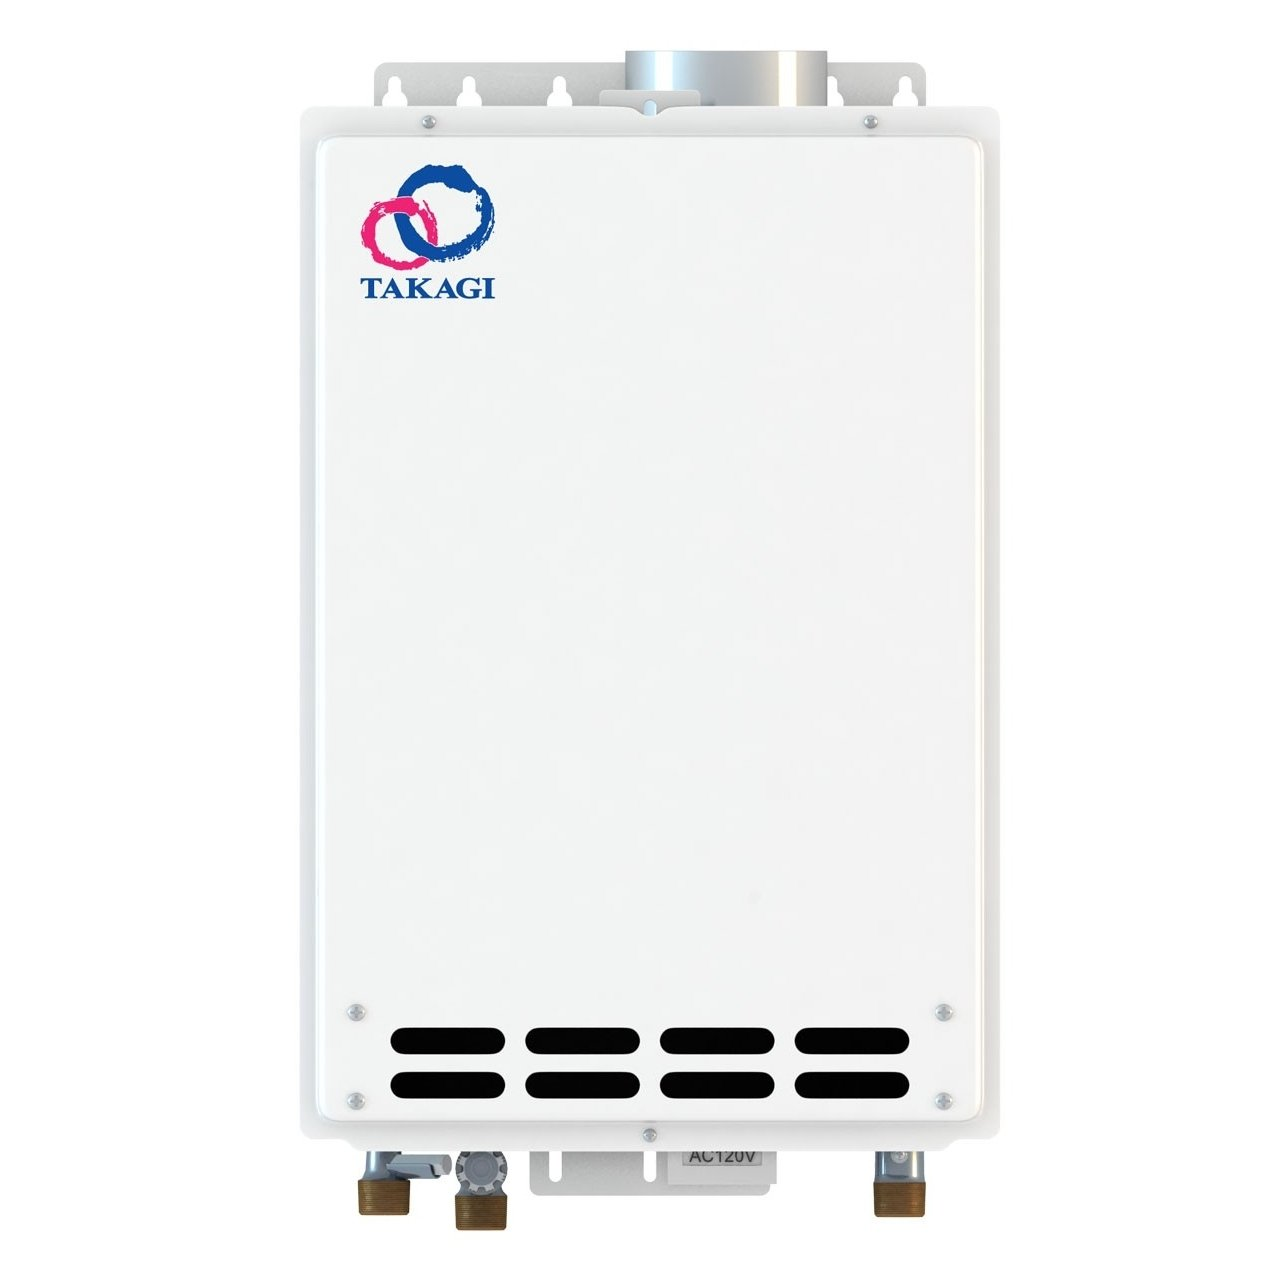 4. Takagi T-KJr2-IN-LP Indoor Tankless Water Heater, Propane